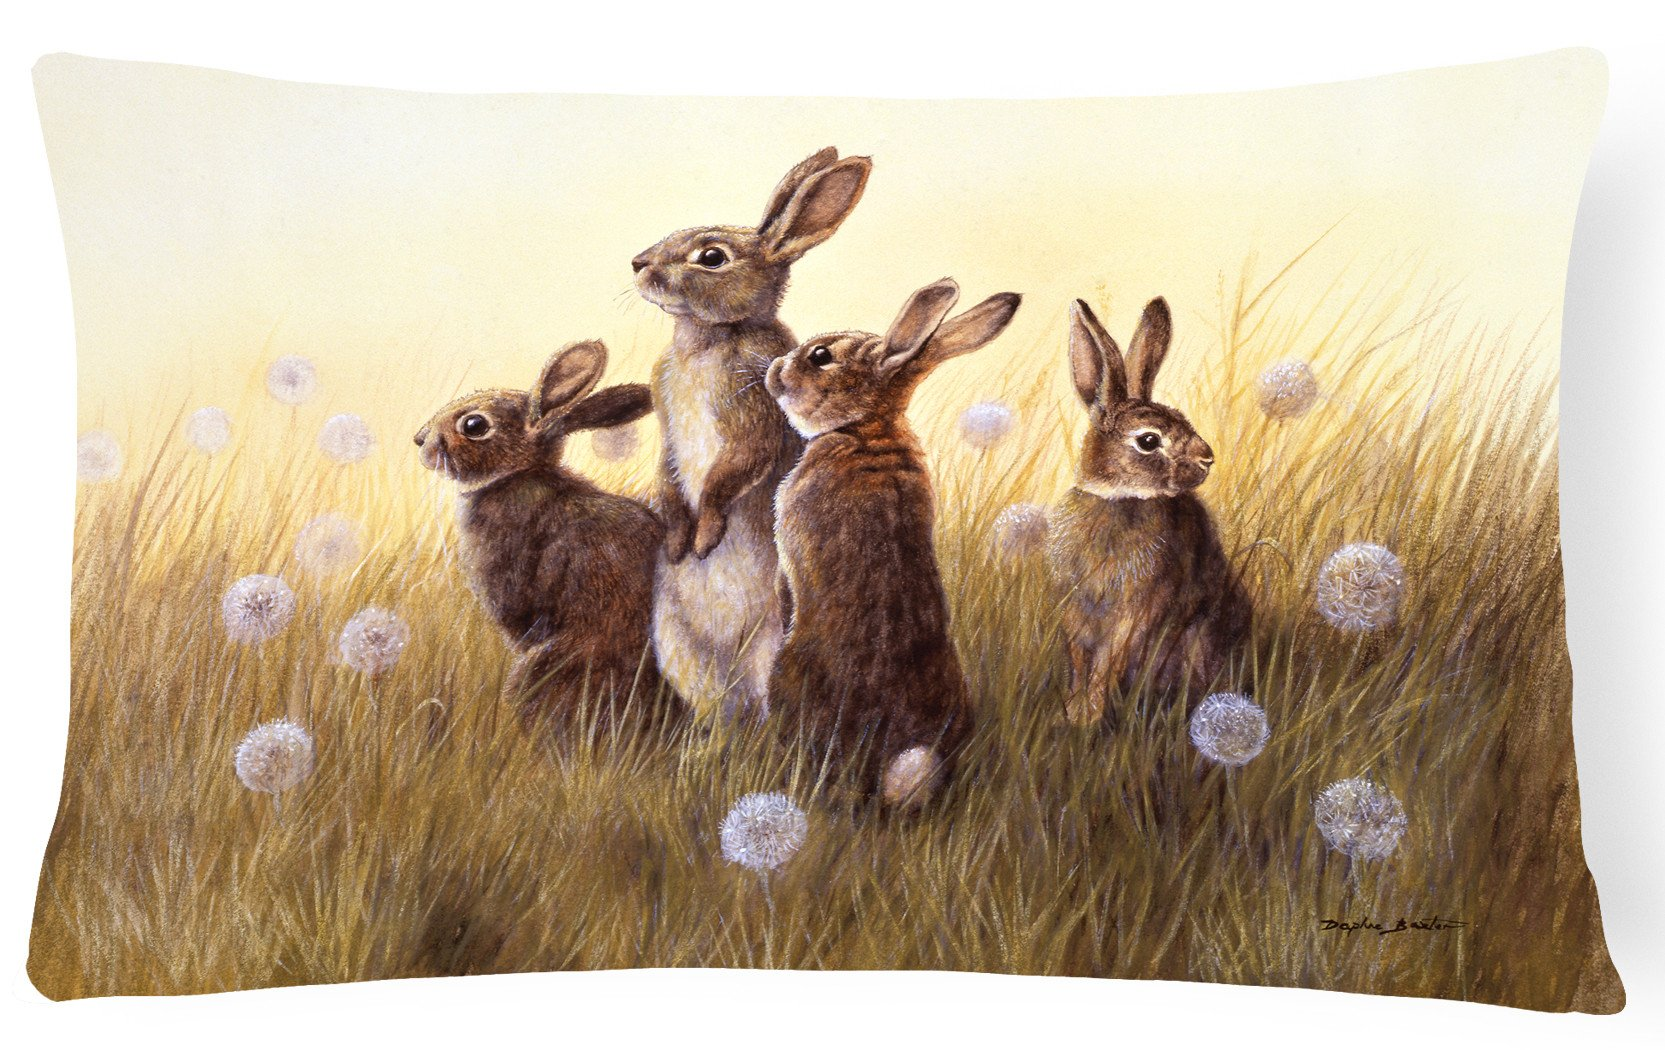 Buy this Rabbits in the Dandelions Fabric Decorative Pillow BDBA0144PW1216